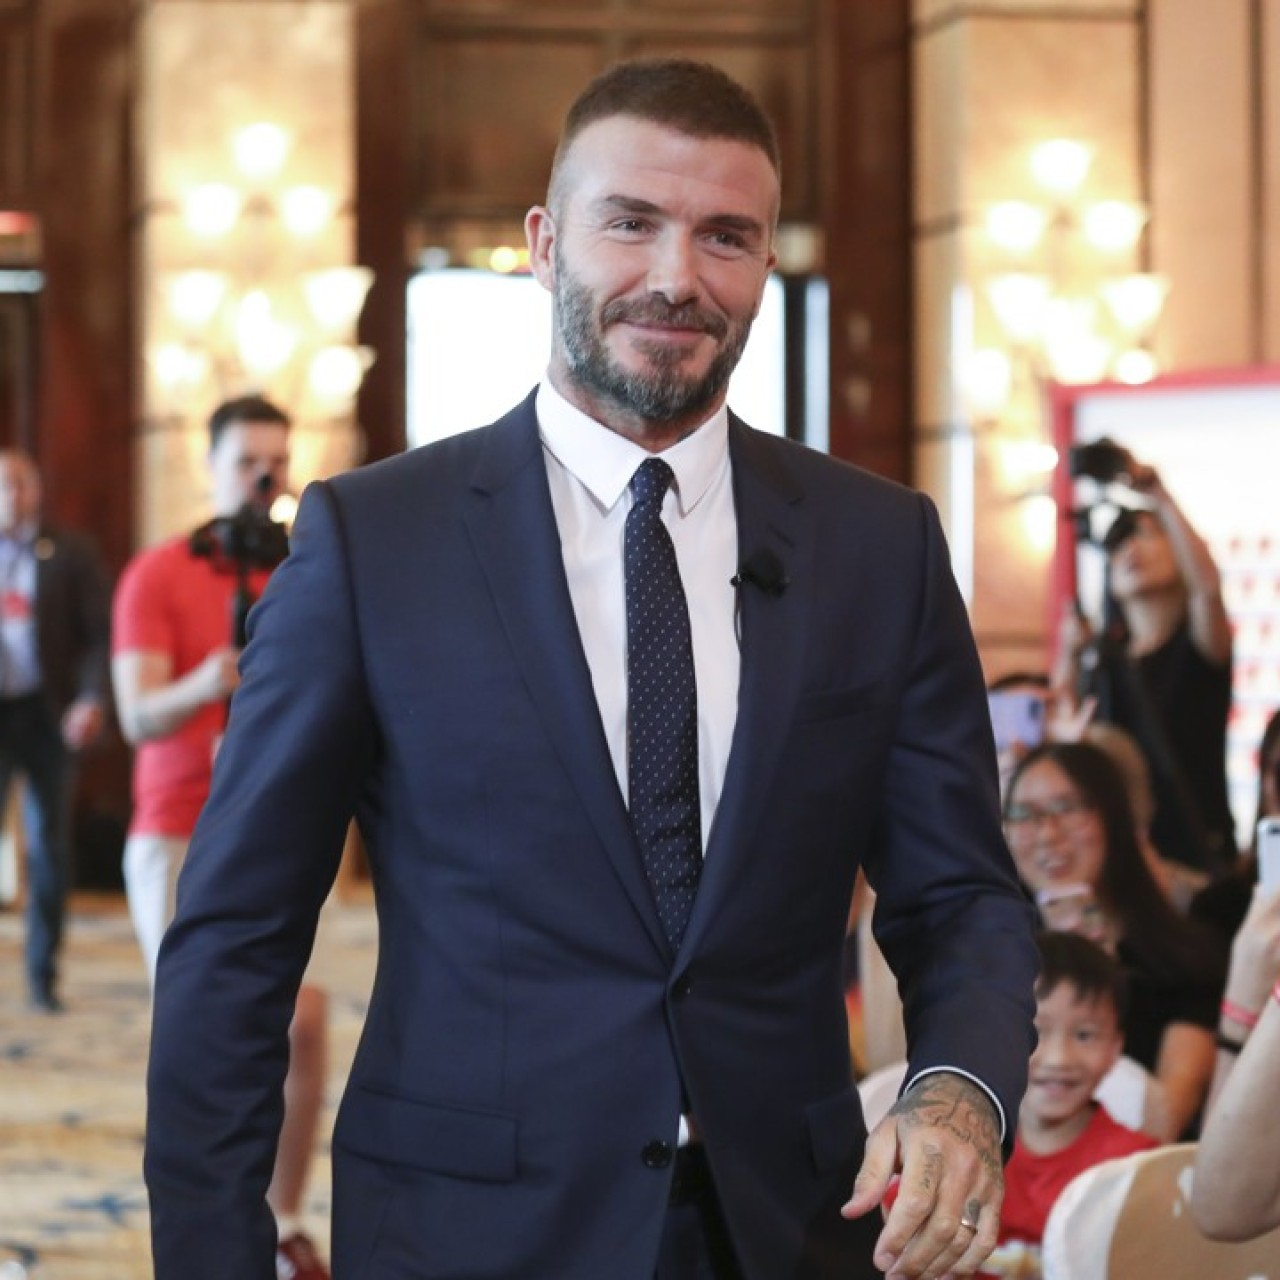 David Beckham's top tips for a healthy life: put that phone